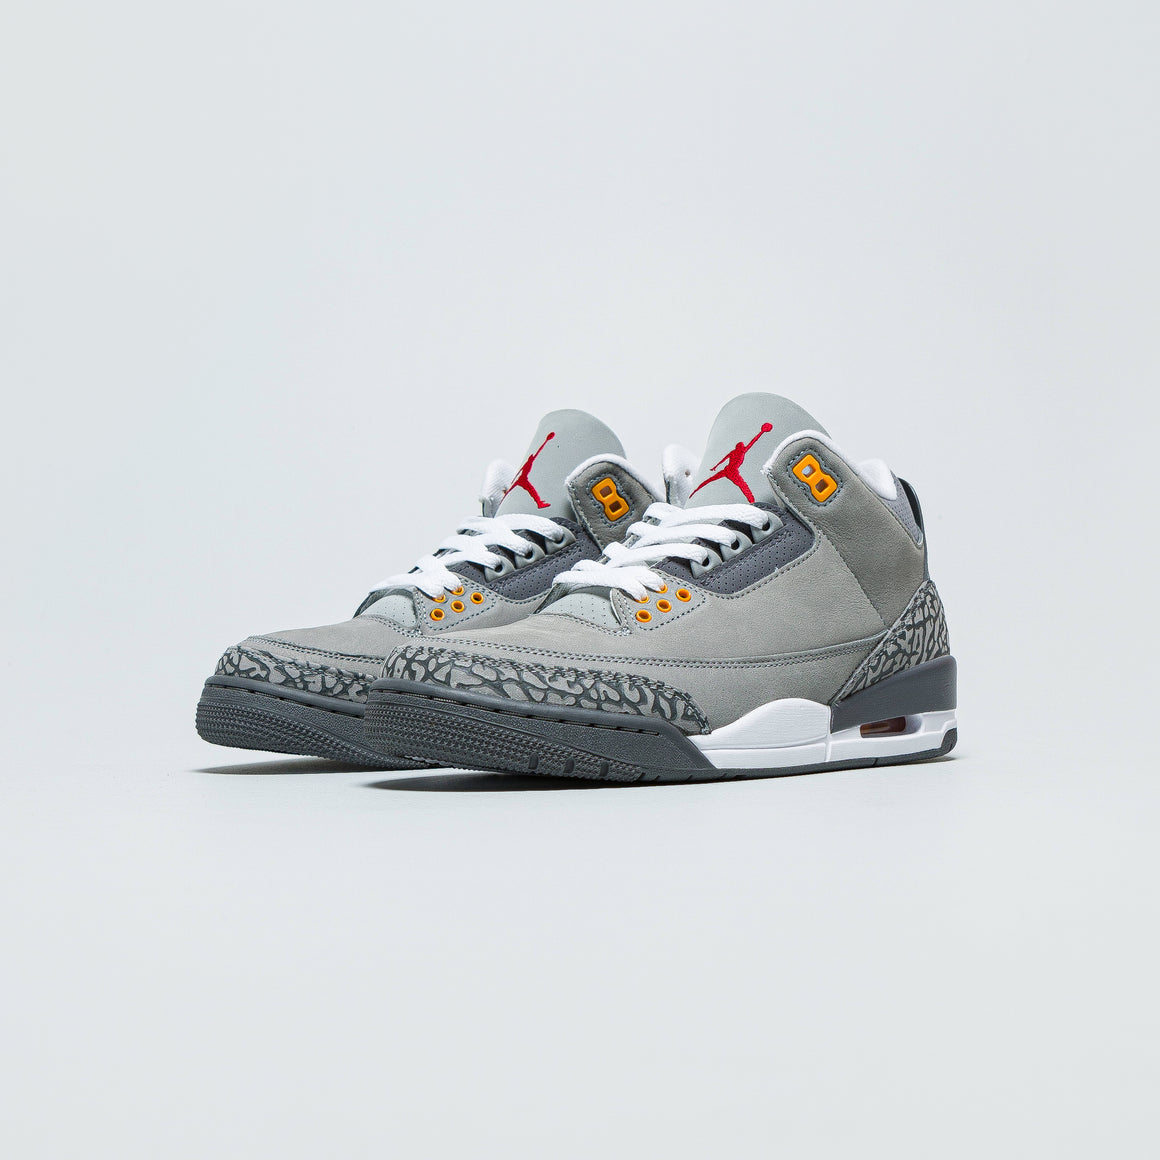 Jordan - Air Jordan 3 Retro - 'Cool Grey' - Up There